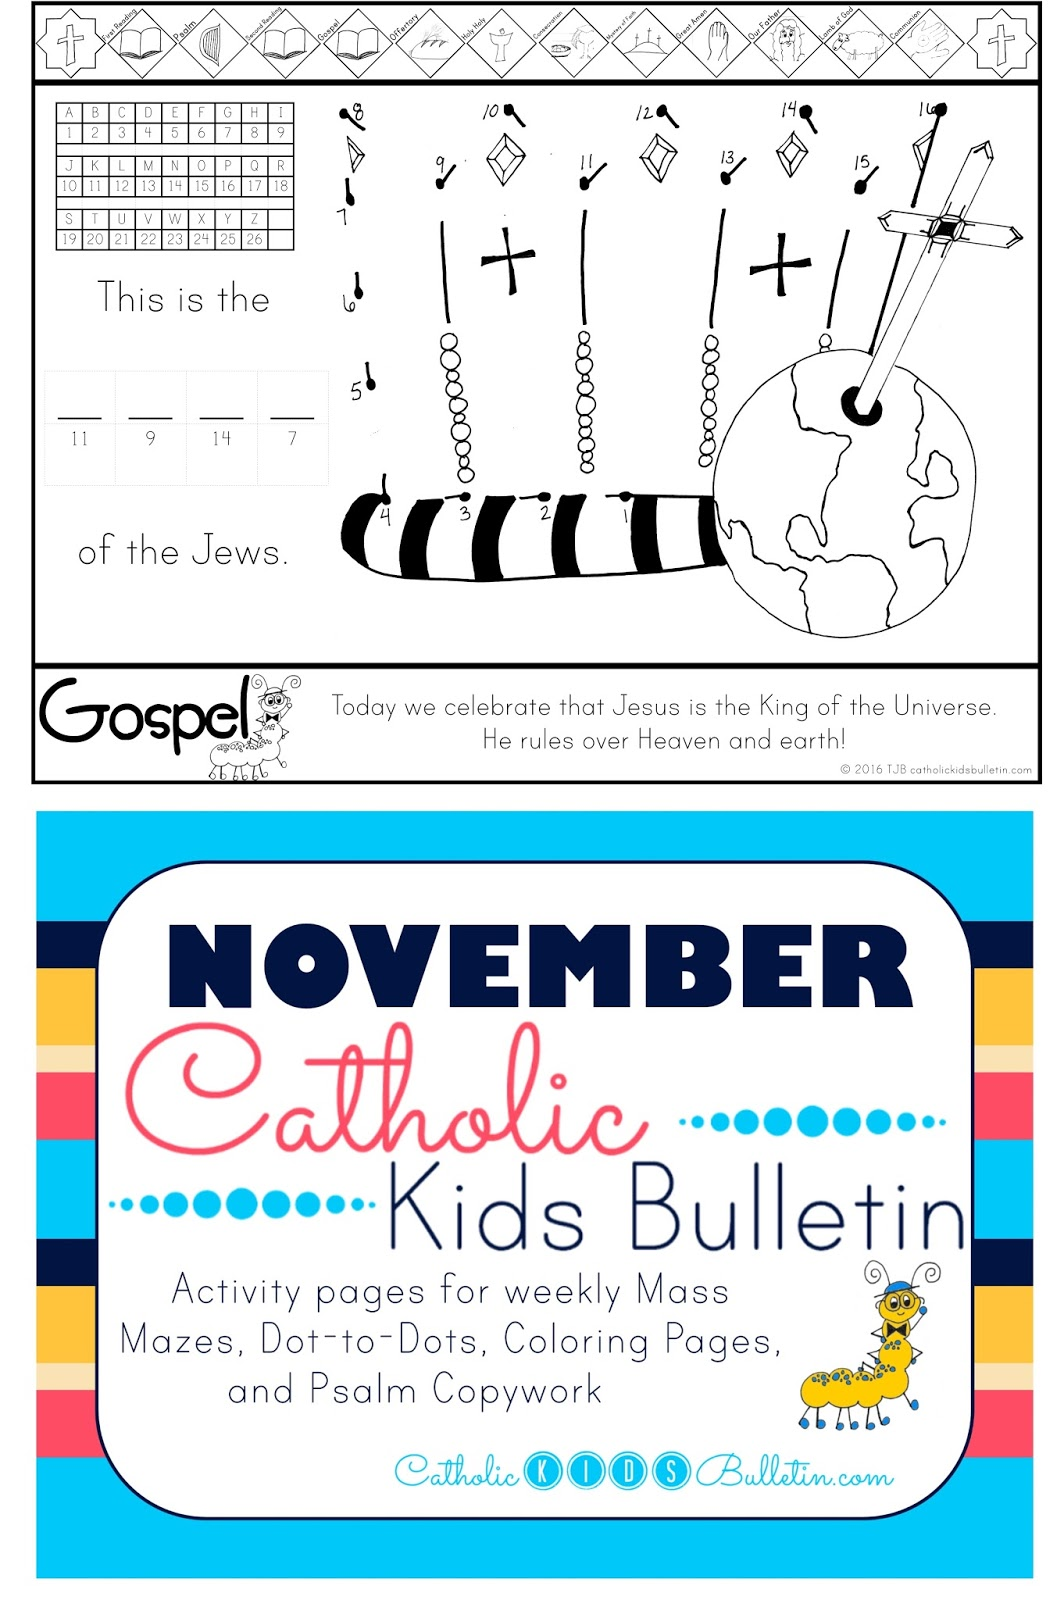 Catholic Kids Bulletin: Weekly Mass Prep for Kids! Luke 23:35-43